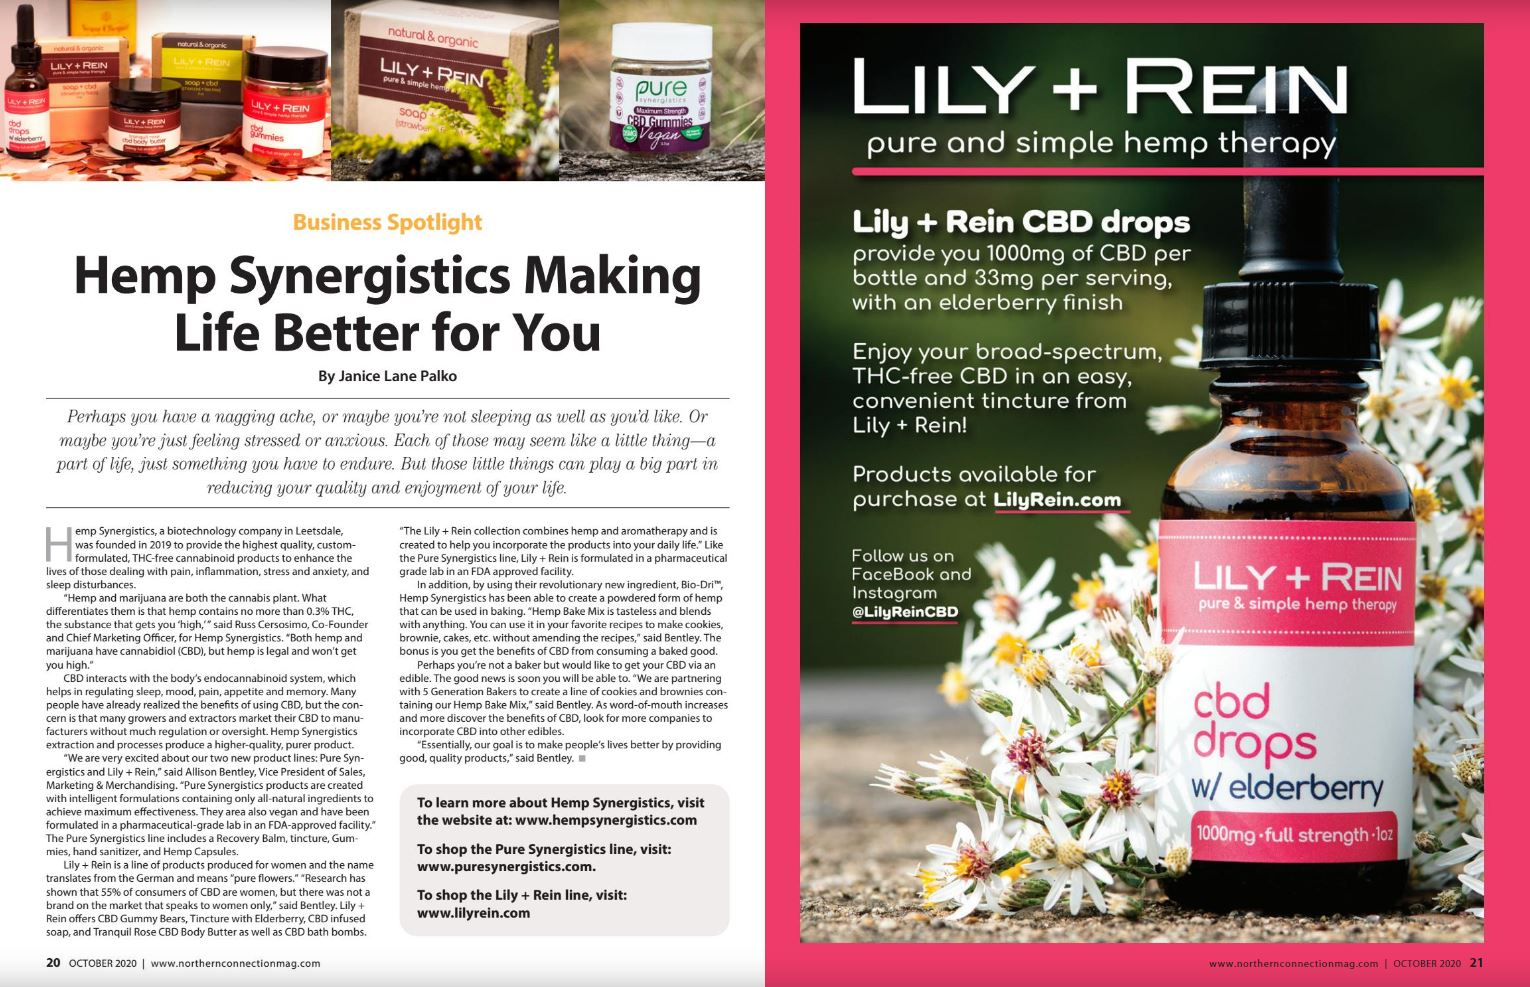 Hemp Synergistics featured in Northern Connection Magazine